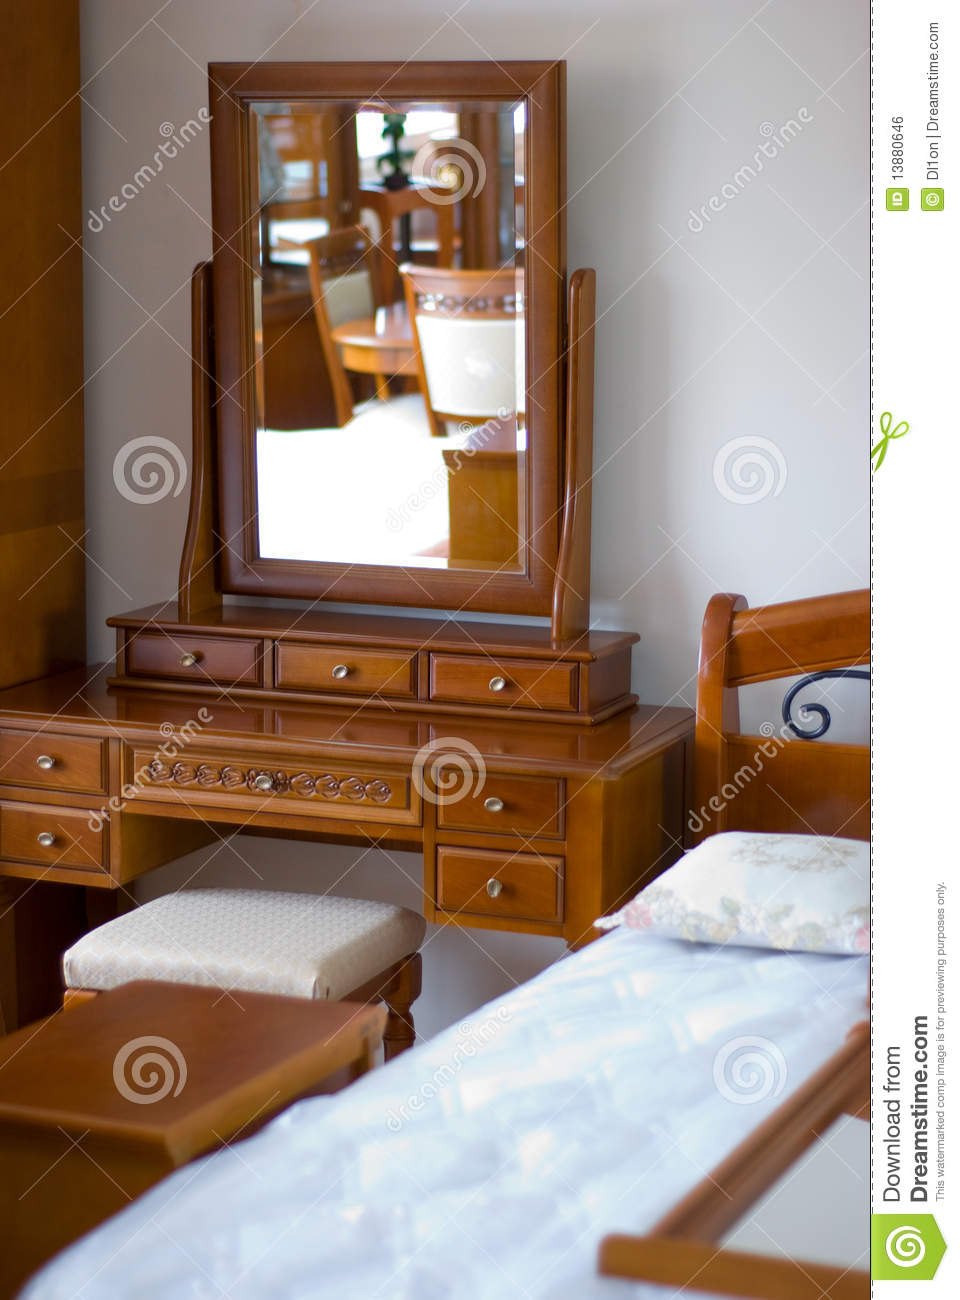 mirror bed furniture in bedroom royalty free stock image image